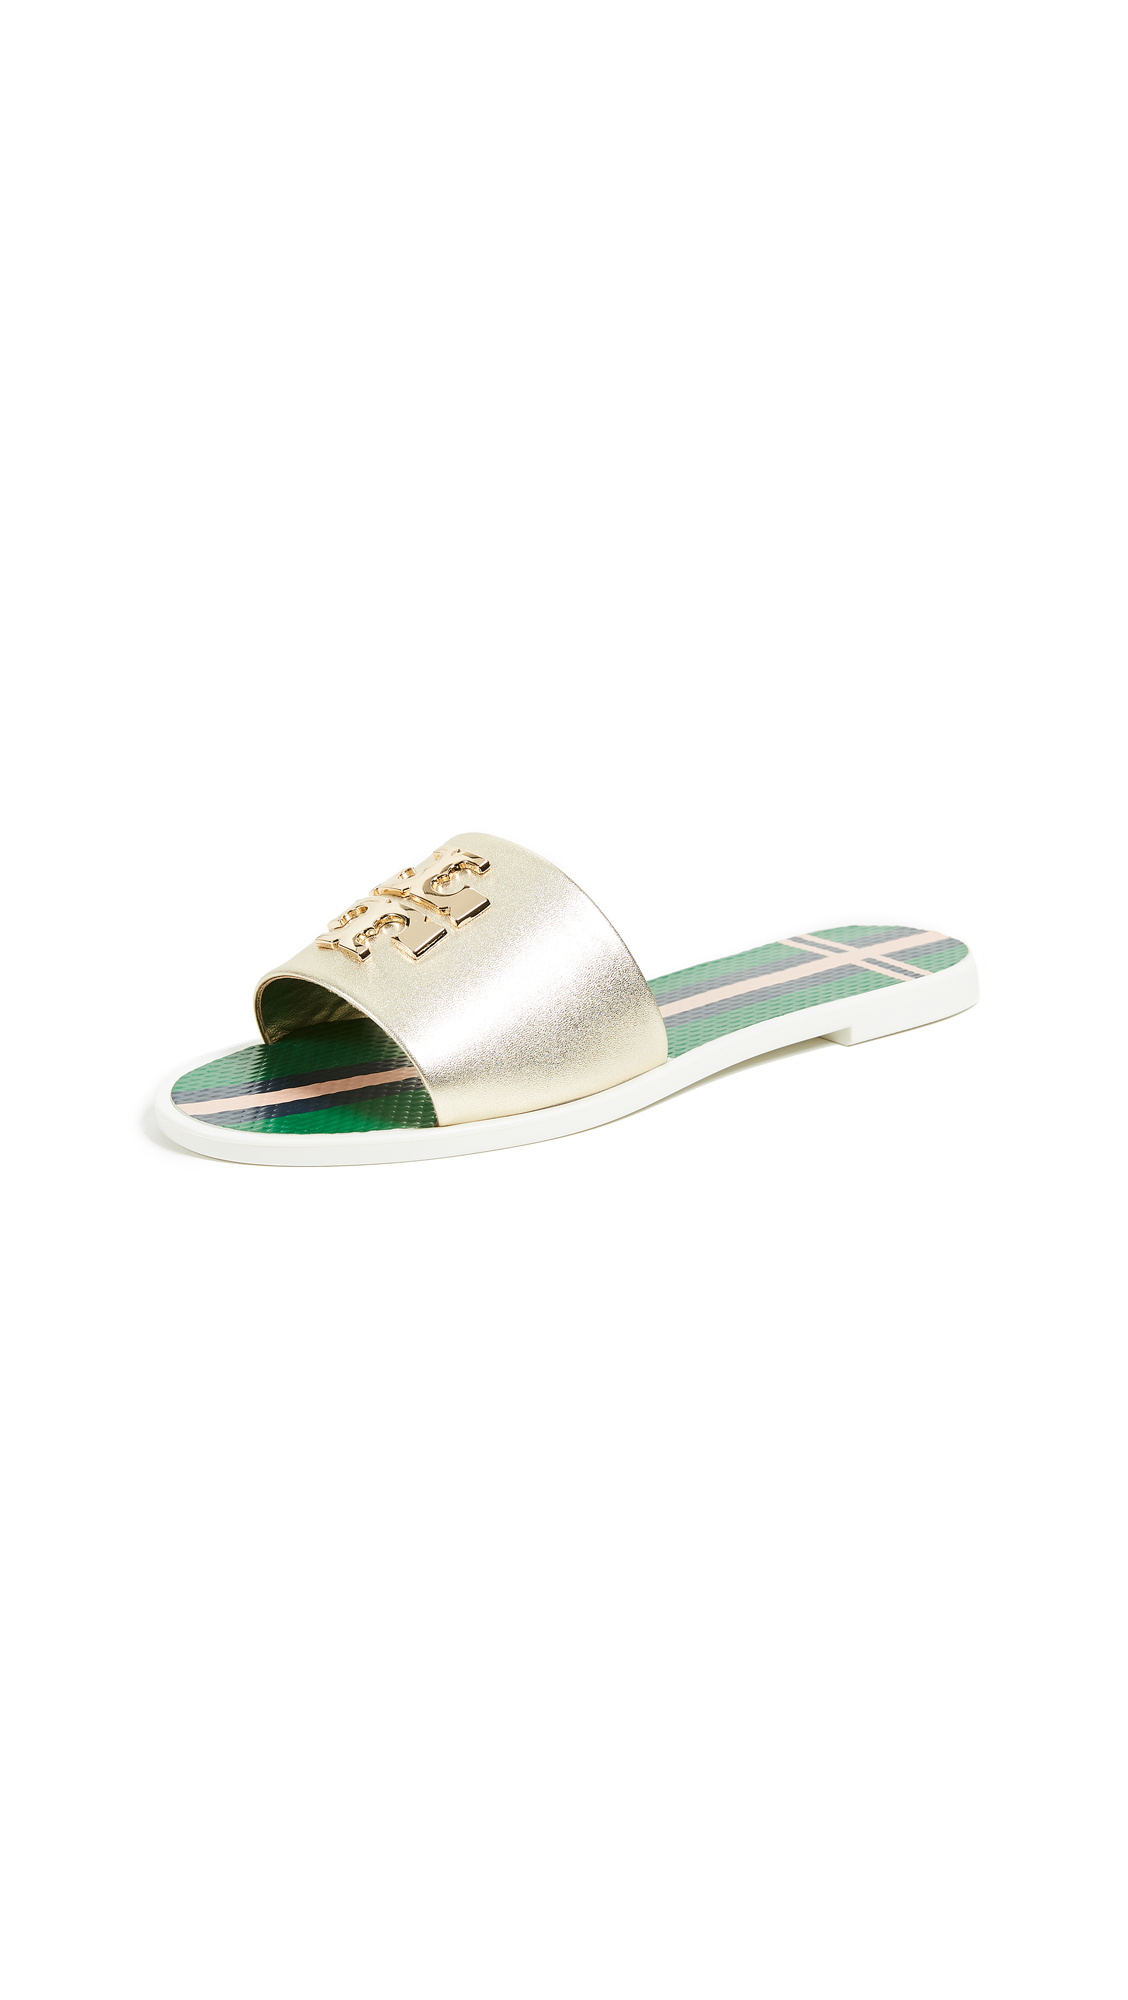 Tory Burch Logo Jelly Slide - Spark Gold